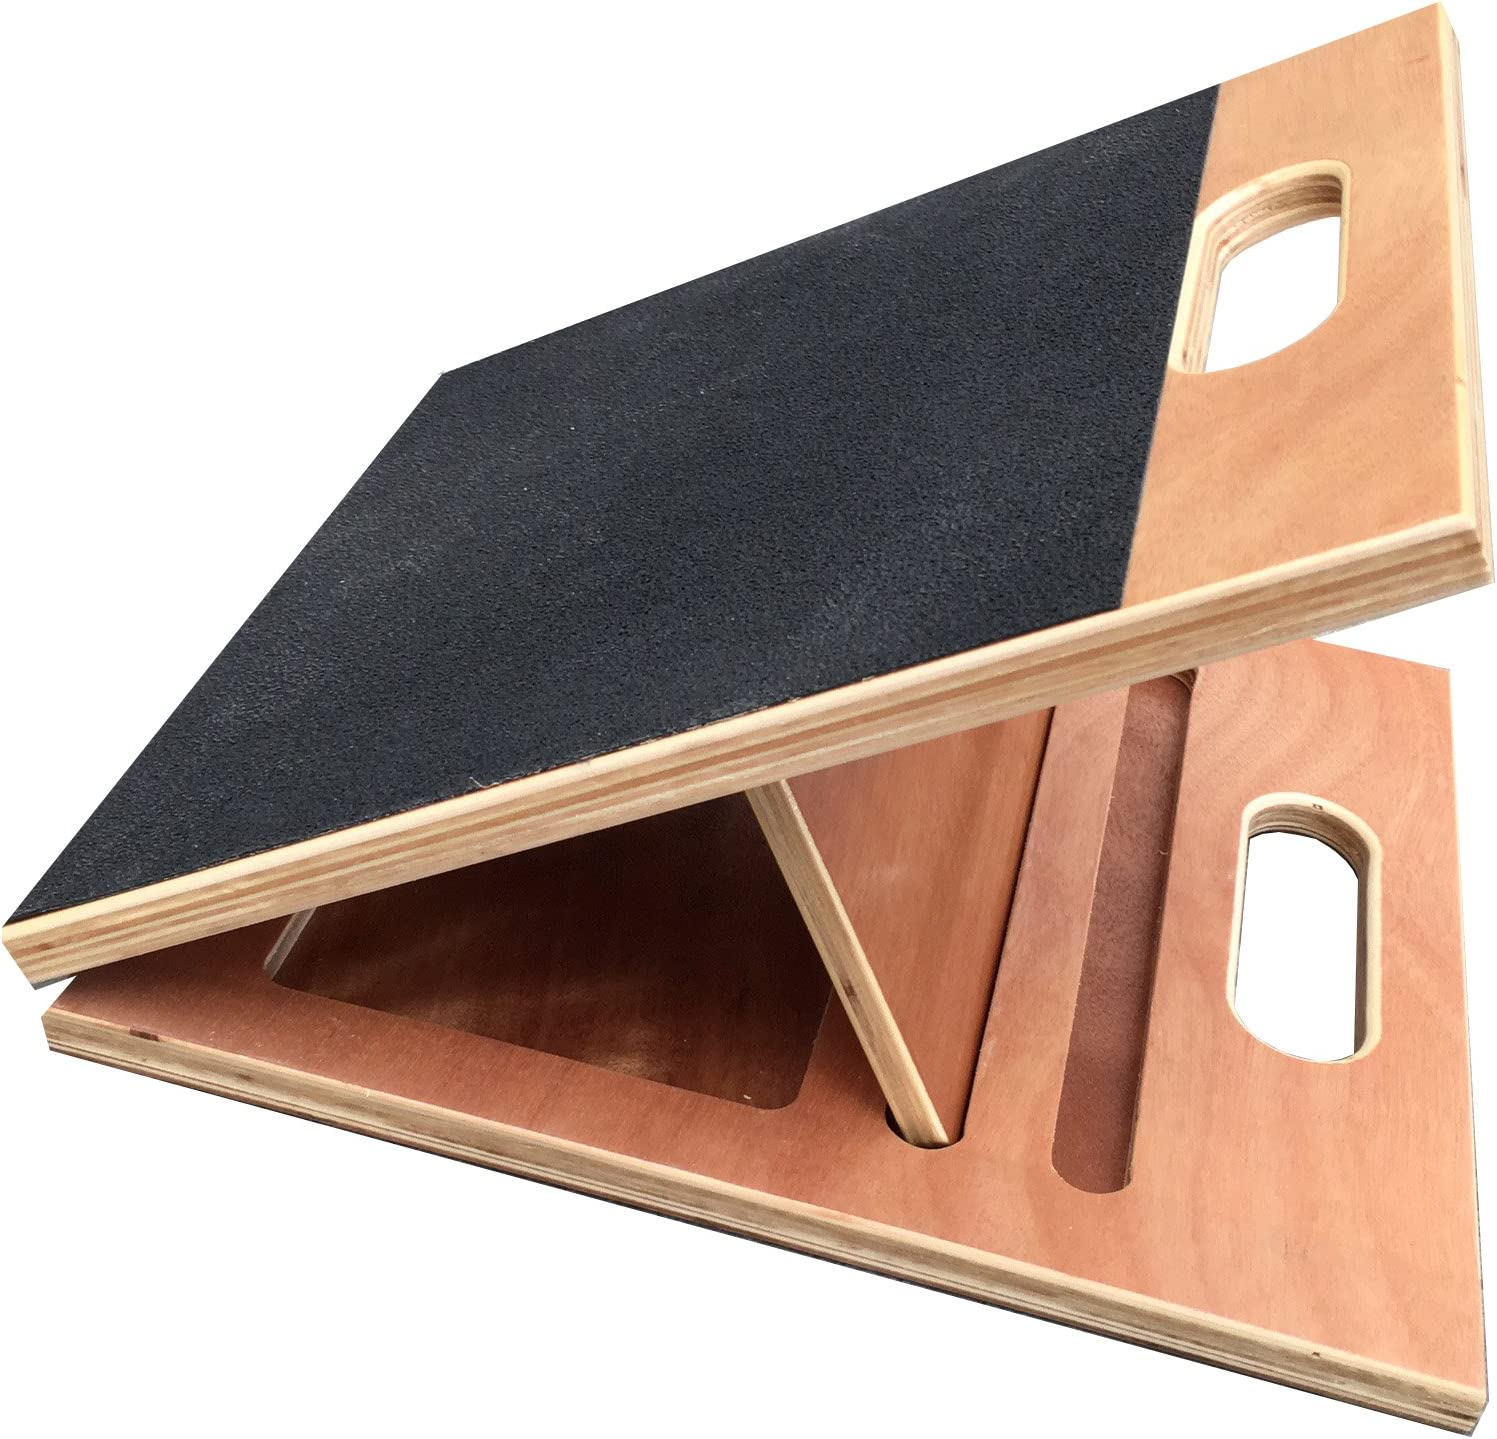 """BodyKore Posturenomic Slant Board- 13"""" Width (Large)- 4 Settings 26°, 38°, 42°- Fully Collapsible to 2"""" Width w/Carrying Handle- Beautiful Finish (350lb Weight Limit) 1 Year Warranty!"""